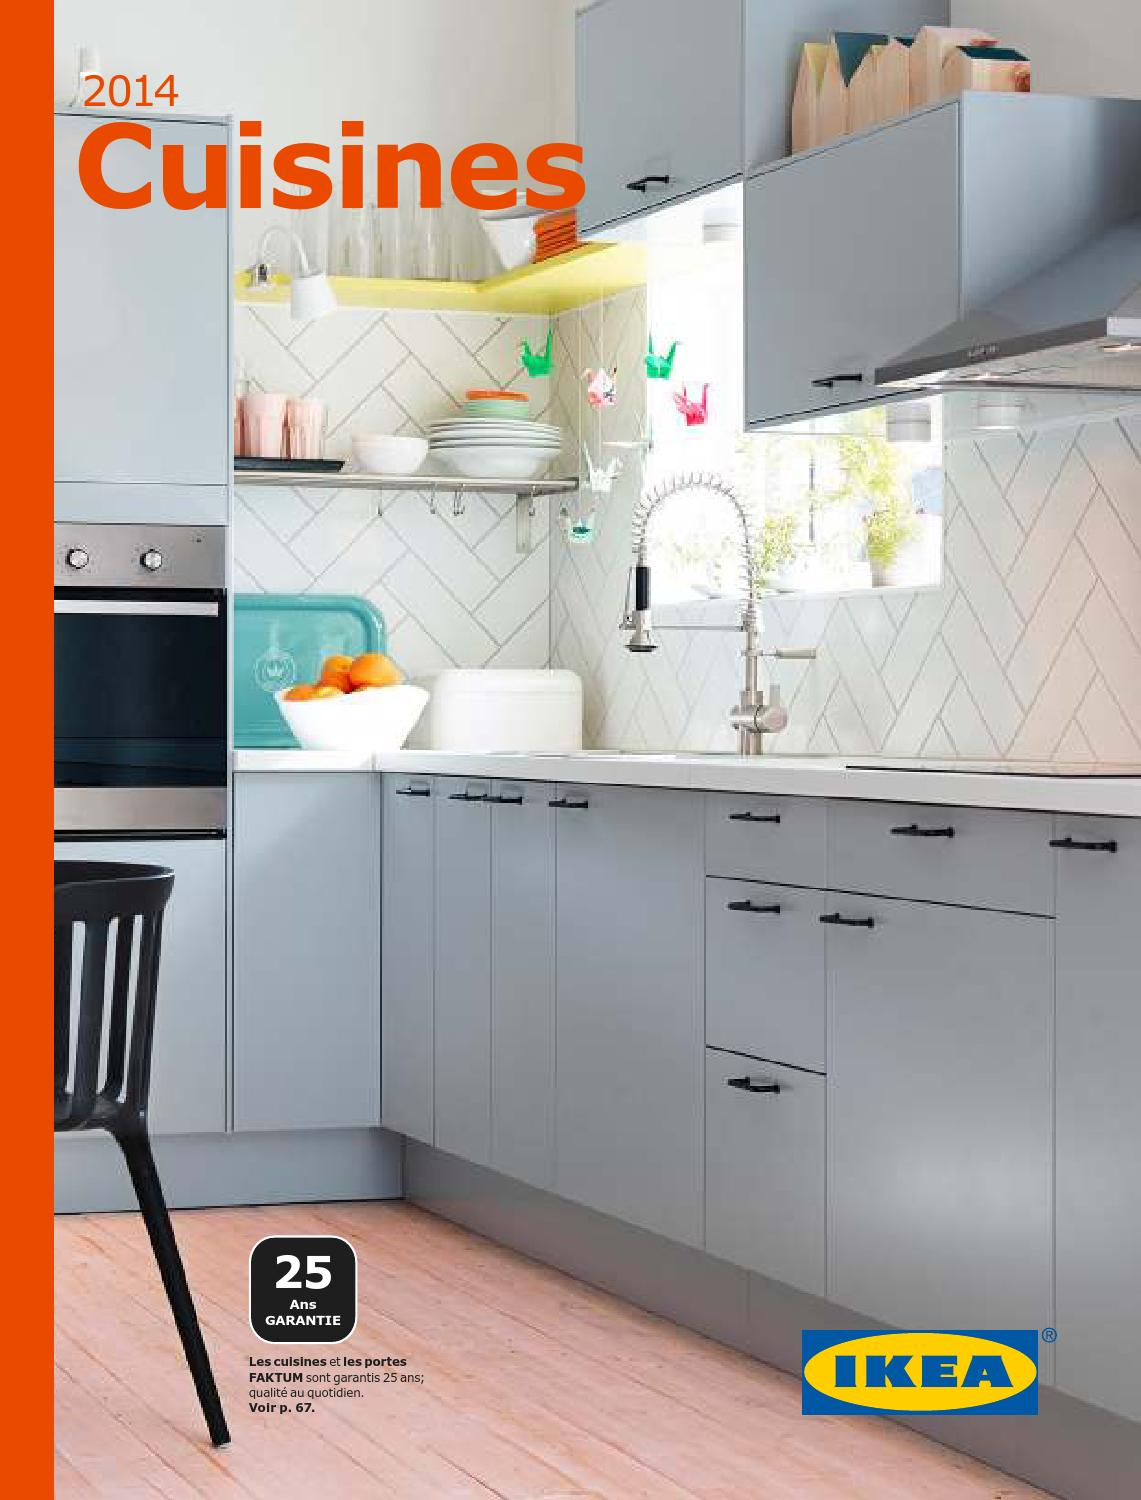 Catalogue ikea cuisine 2014 fr complete by adclick bvba - Cuisine ikea catalogue ...